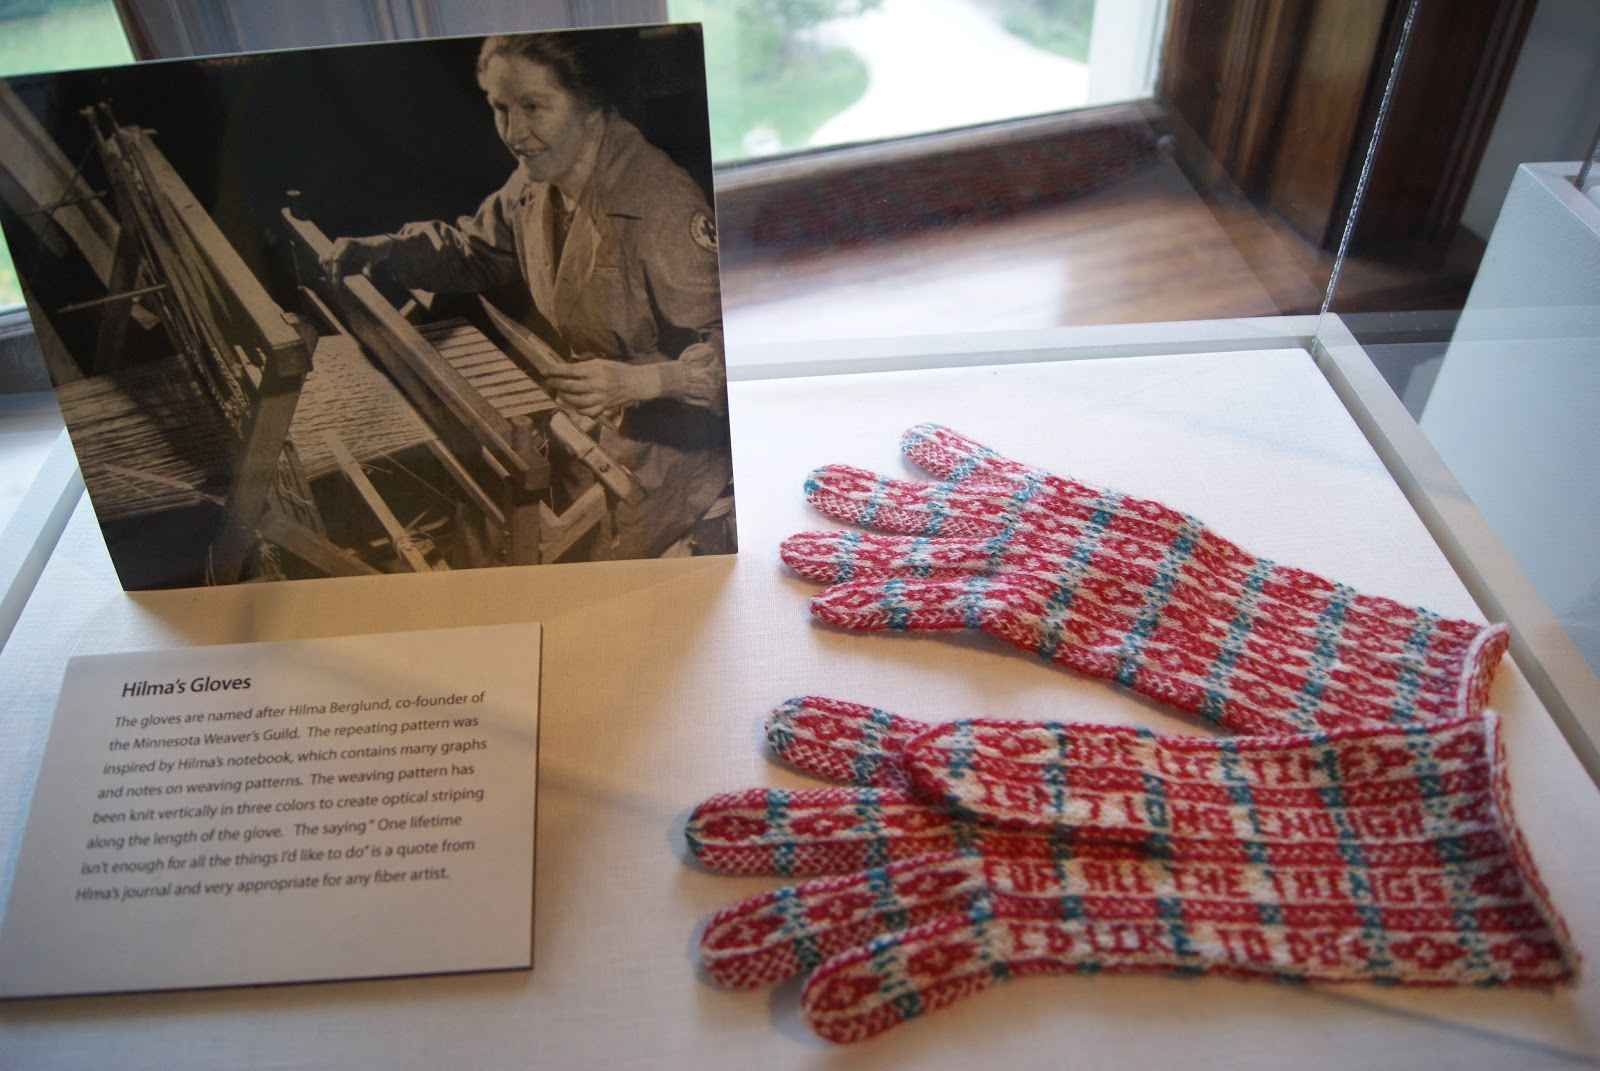 Got Norwegian ancestry? Or like all things Norwegian? Then you might be  interested in their Norwegian Handknits book which came out in 2009.